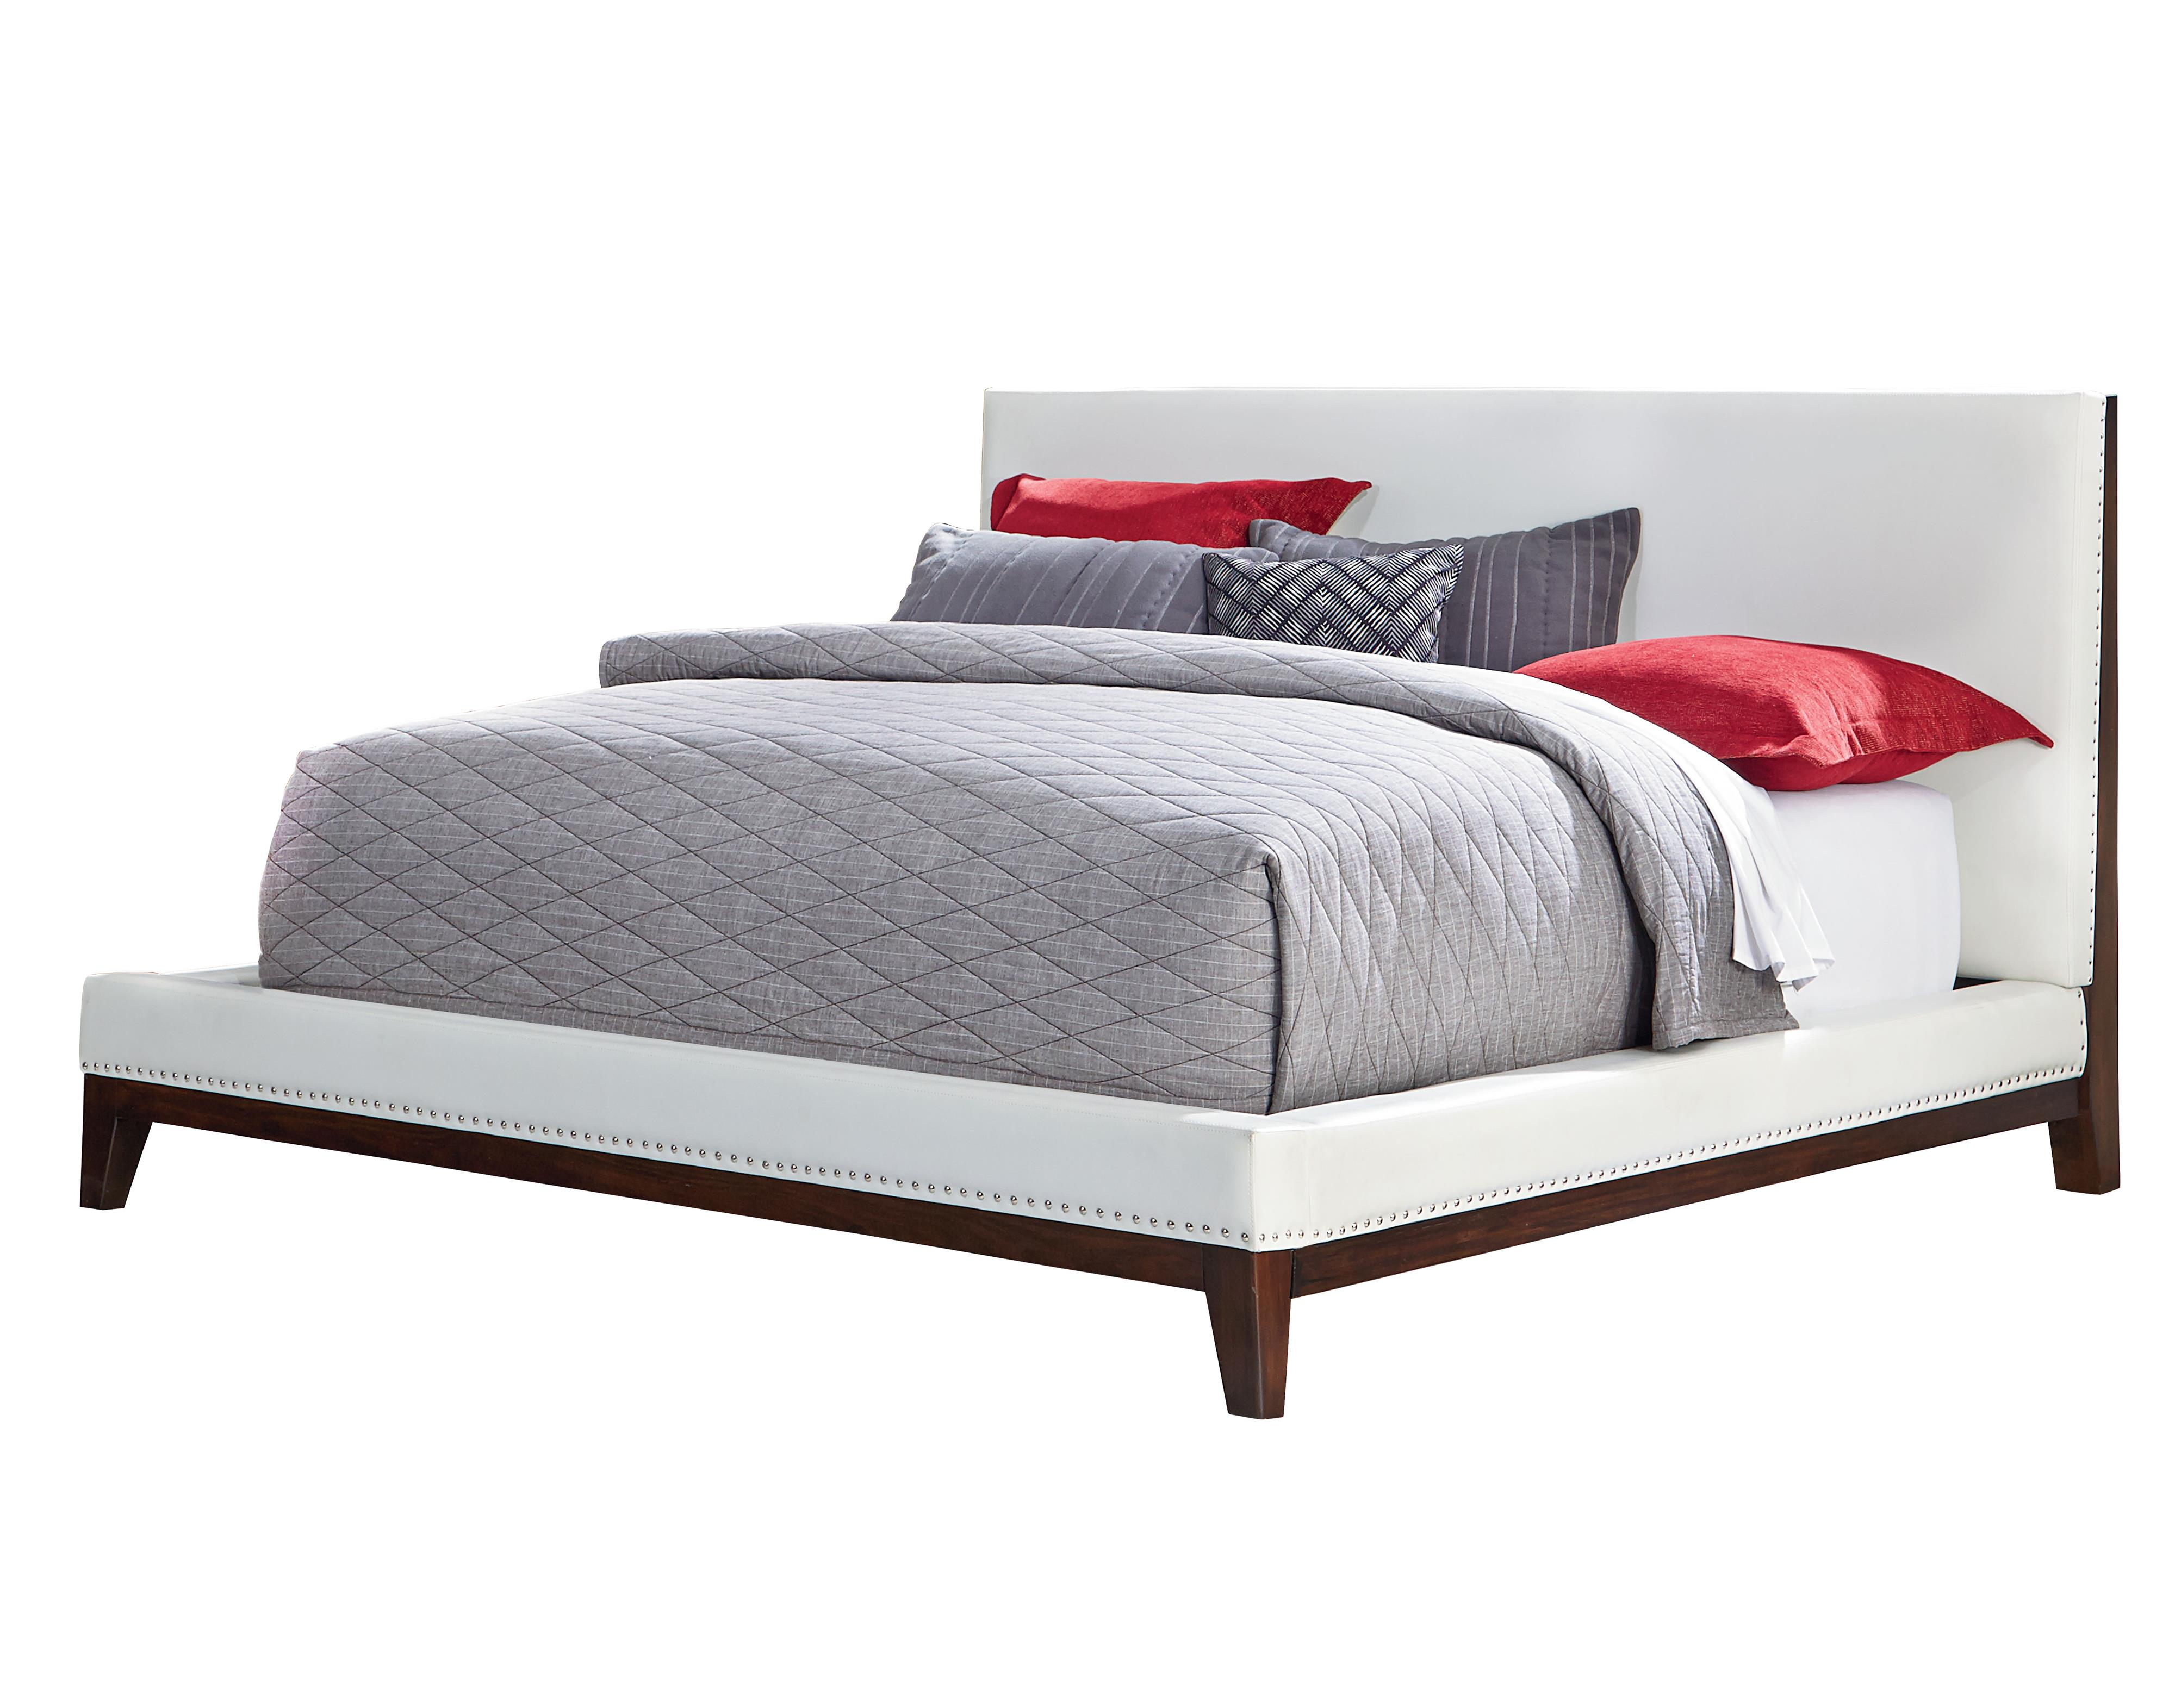 Standard Furniture Couture King Upholstered Bed - Item Number: 81552+54+56